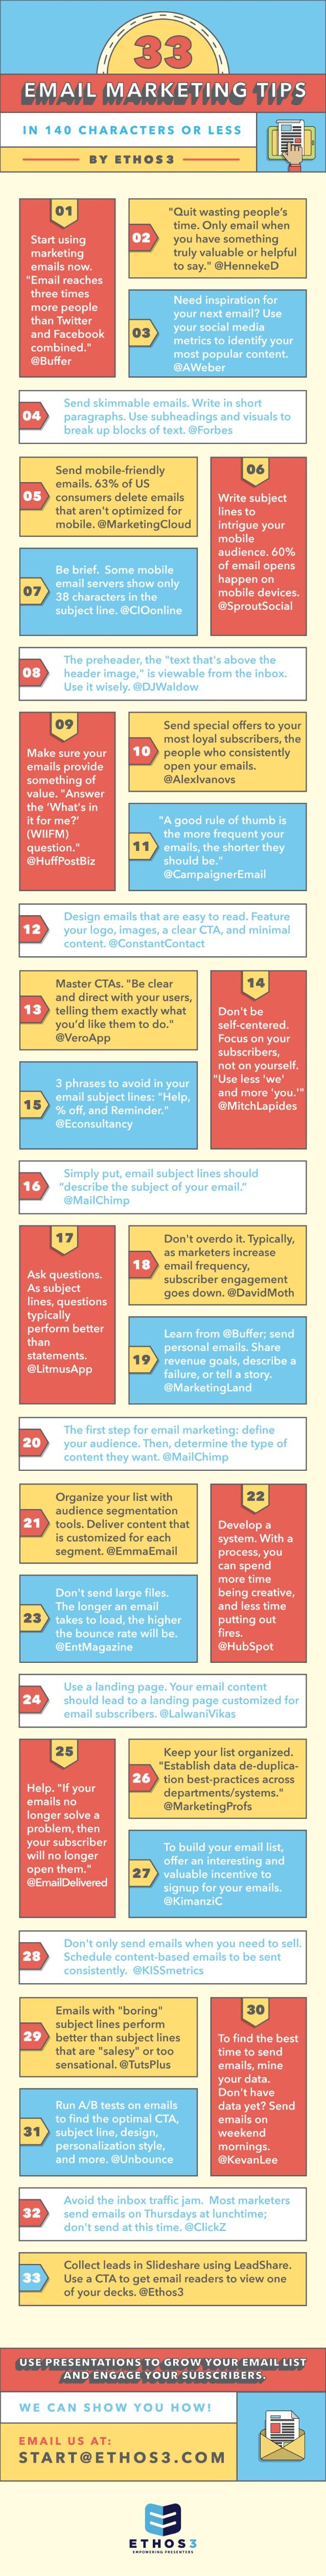 A collection of important email marketing tips to follow for campaign success while increasing your click through rate.